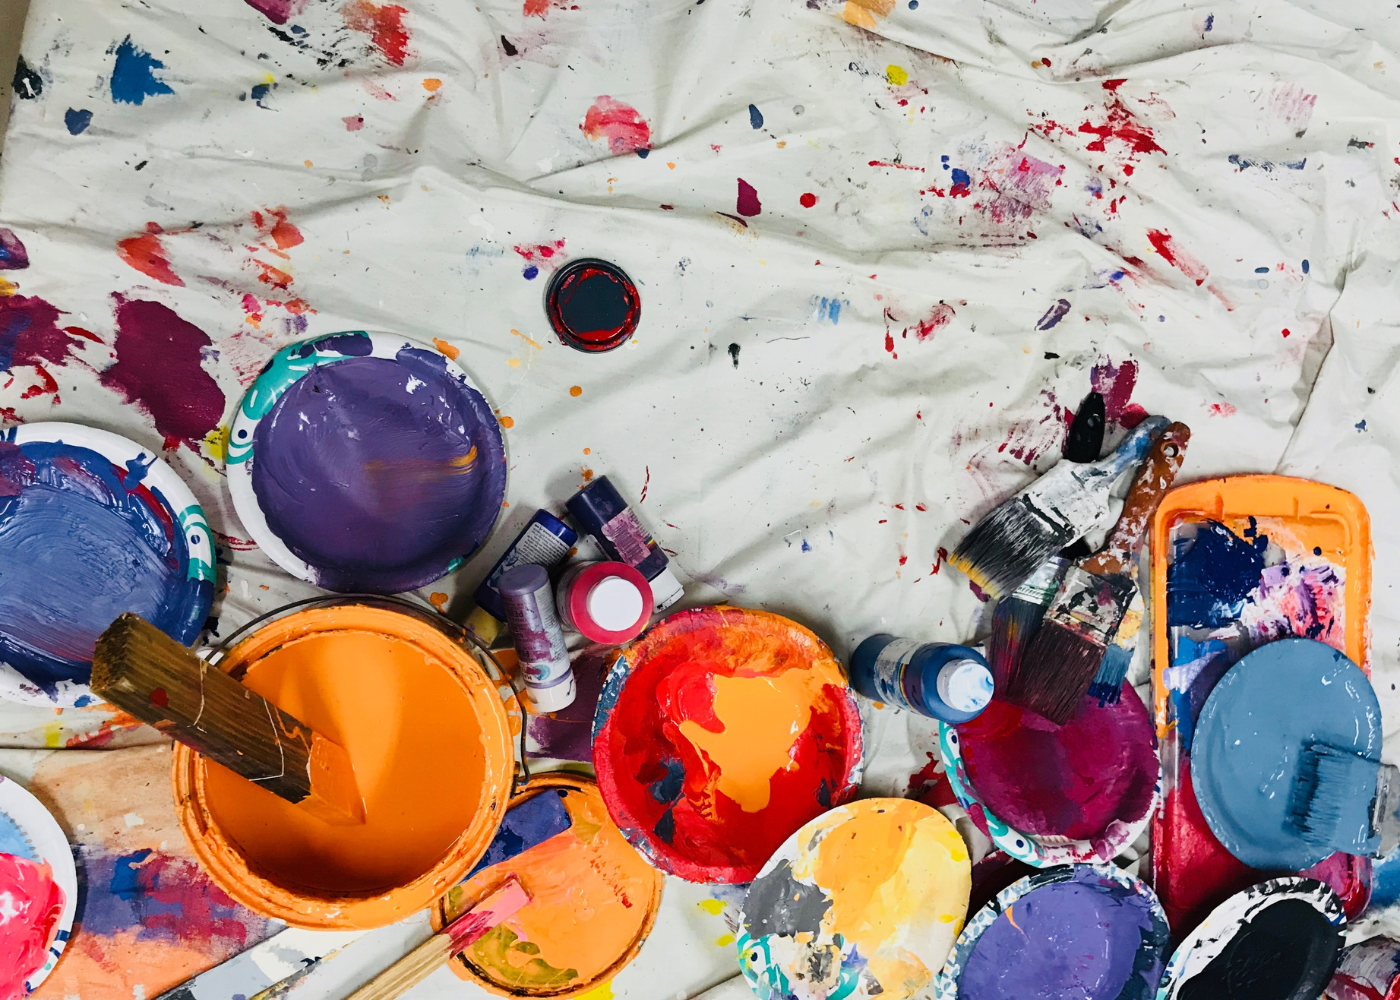 Unleash your inner Picasso and create your own masterpiece at art jamming studios and cafés